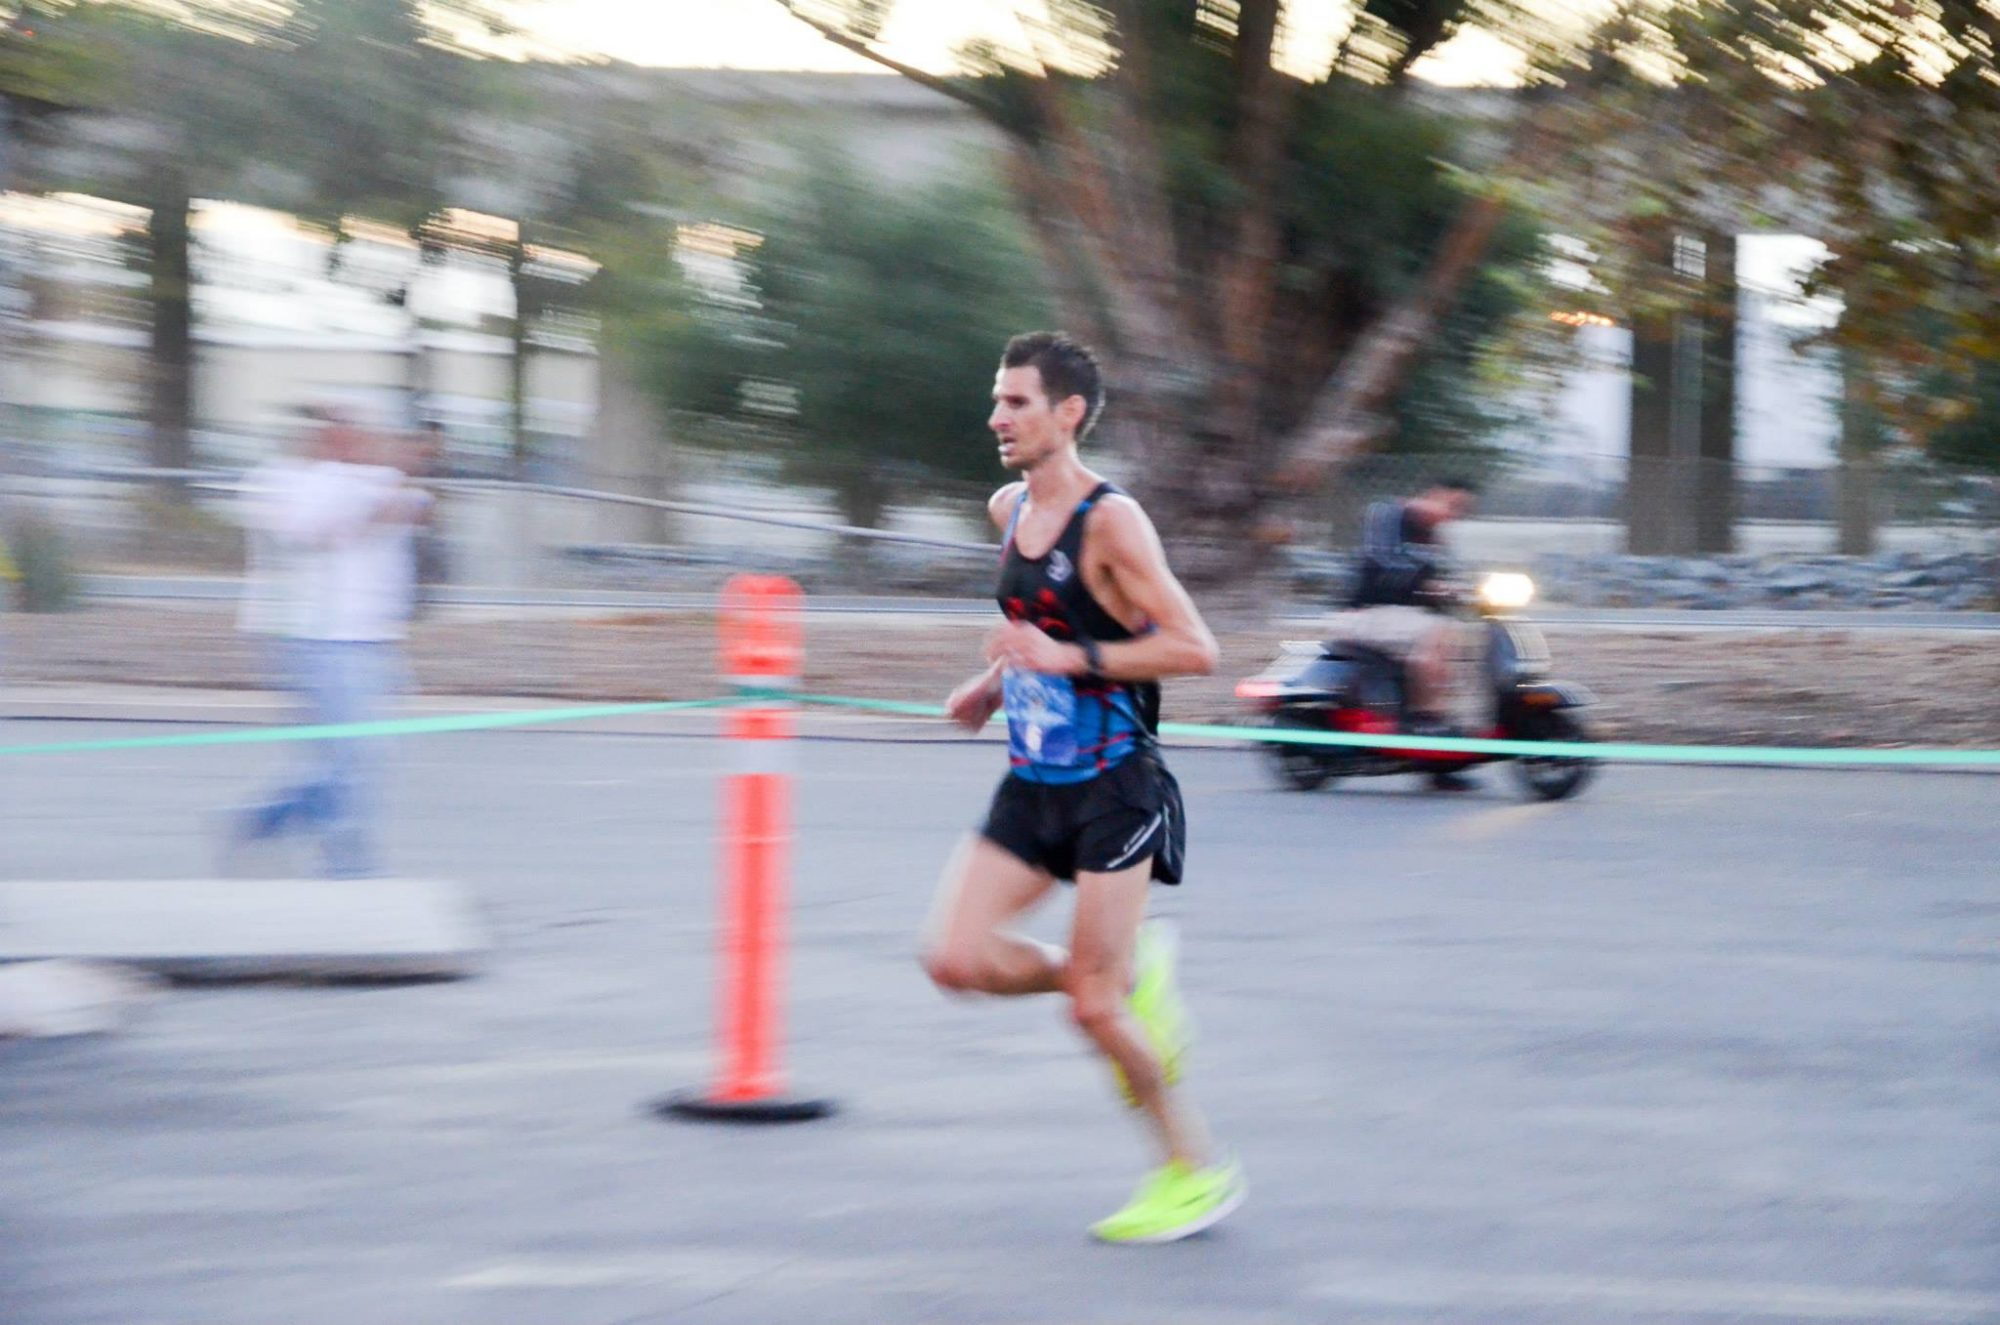 Dr. James winning a half marathon